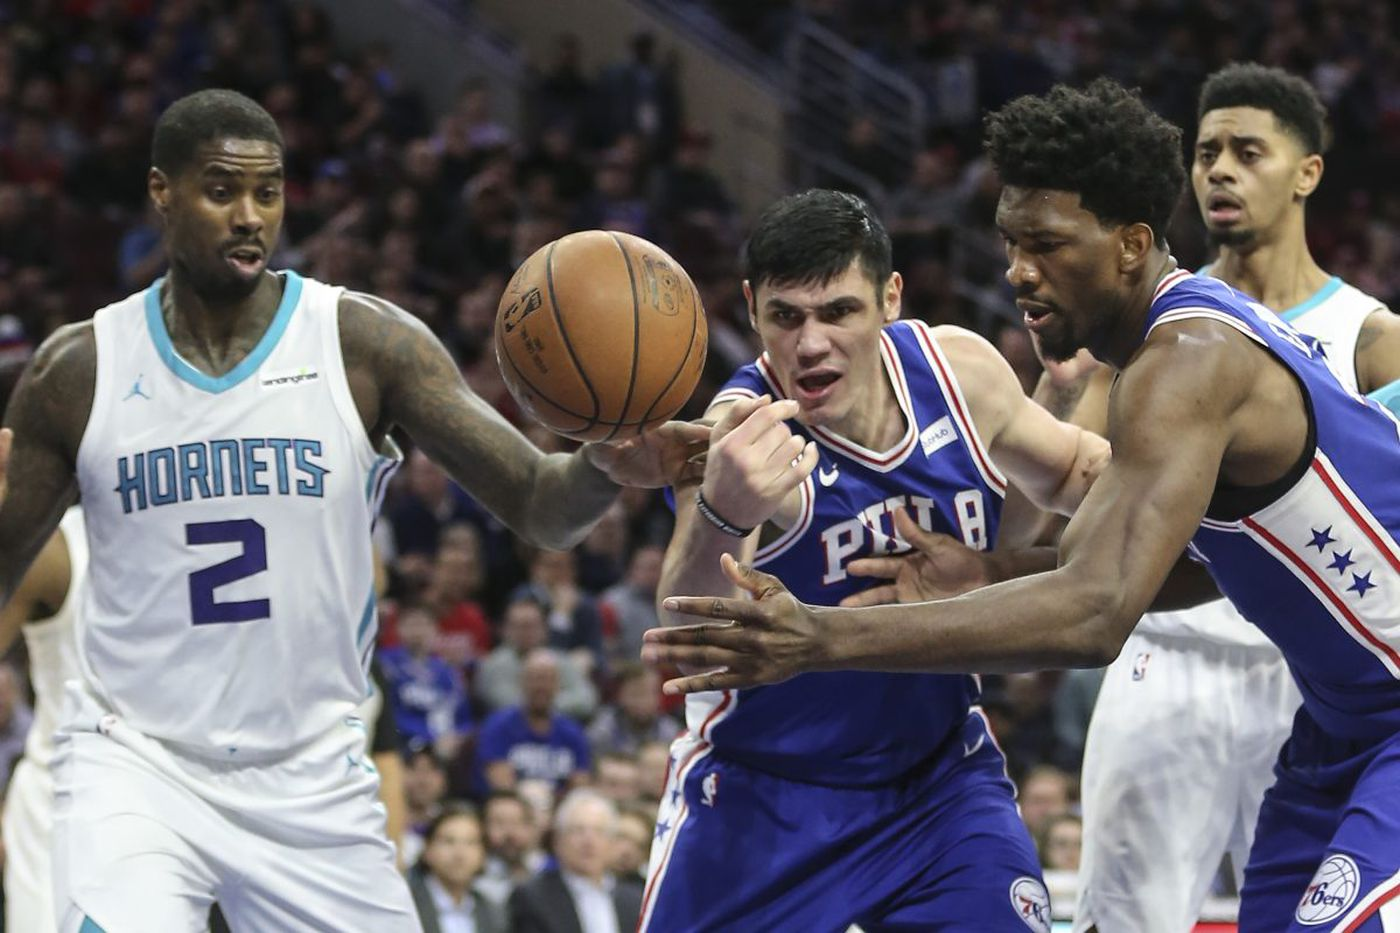 Sixers 108, Hornets 94: Joel Embiid and Marco Belinelli lead second half surge and Ben Simmons notches another triple-double